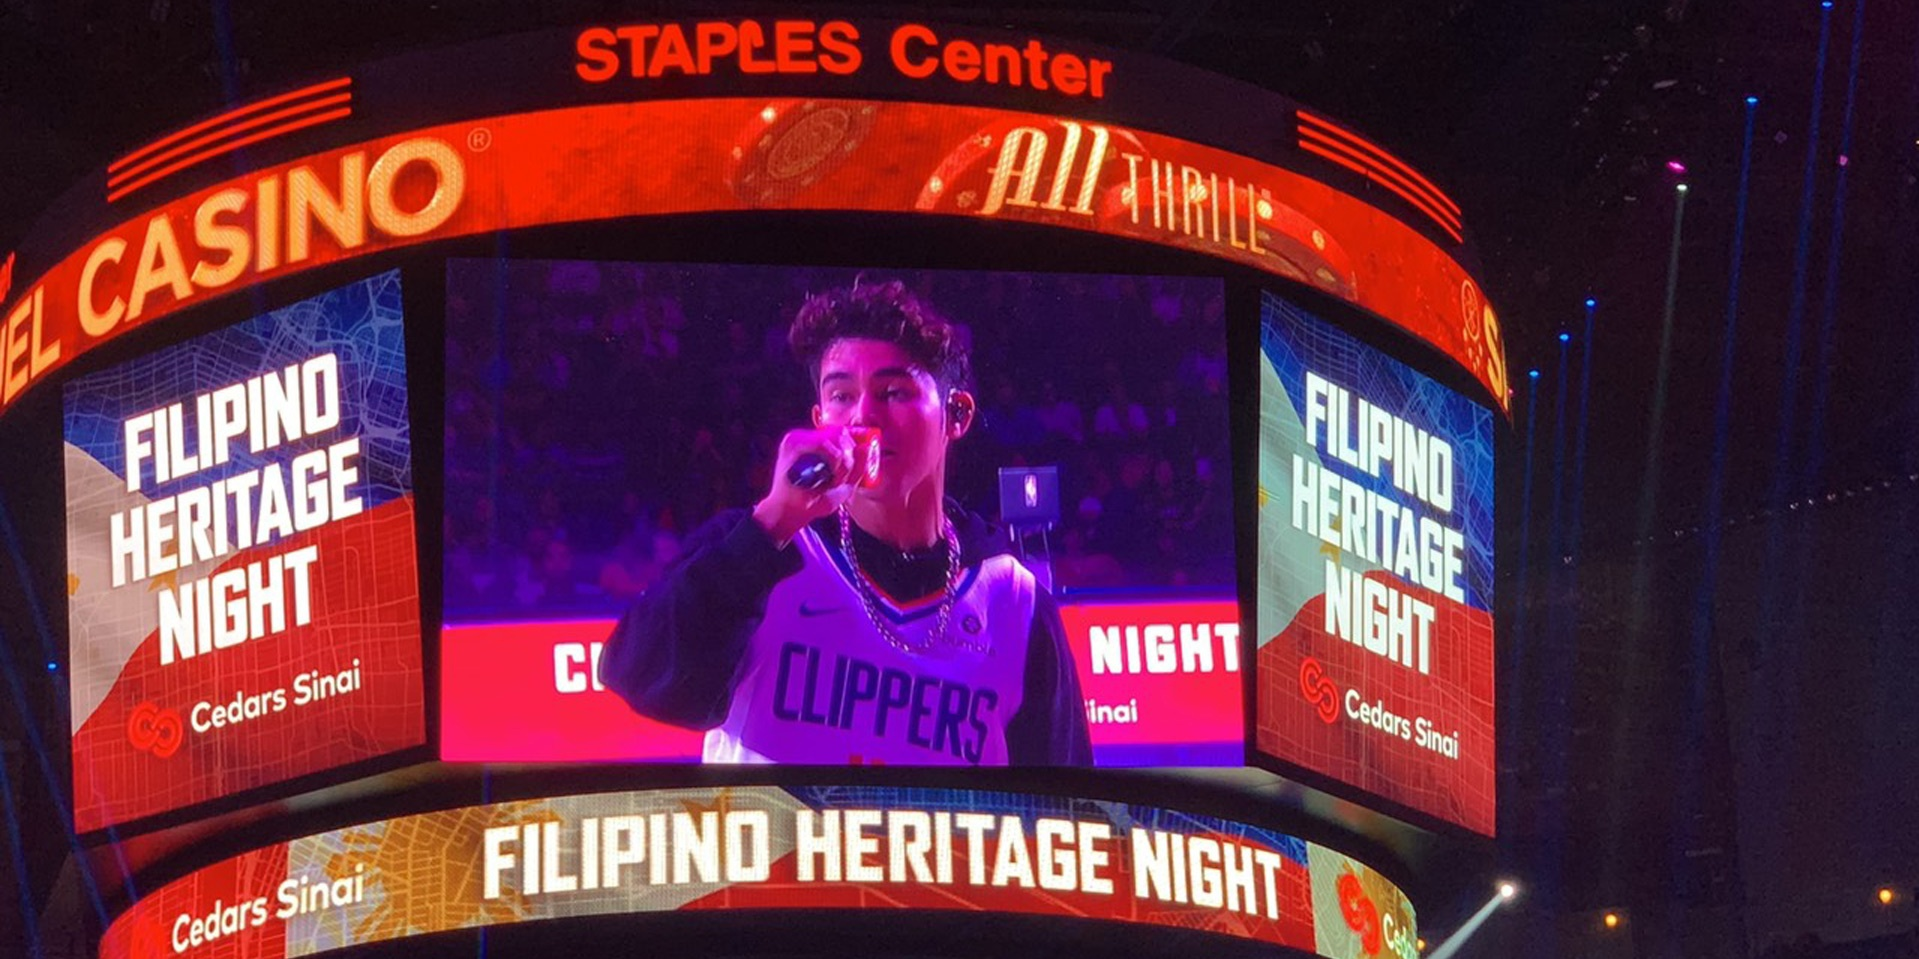 Iñigo Pascual premieres 'Catching Feelings' music video at NBA game